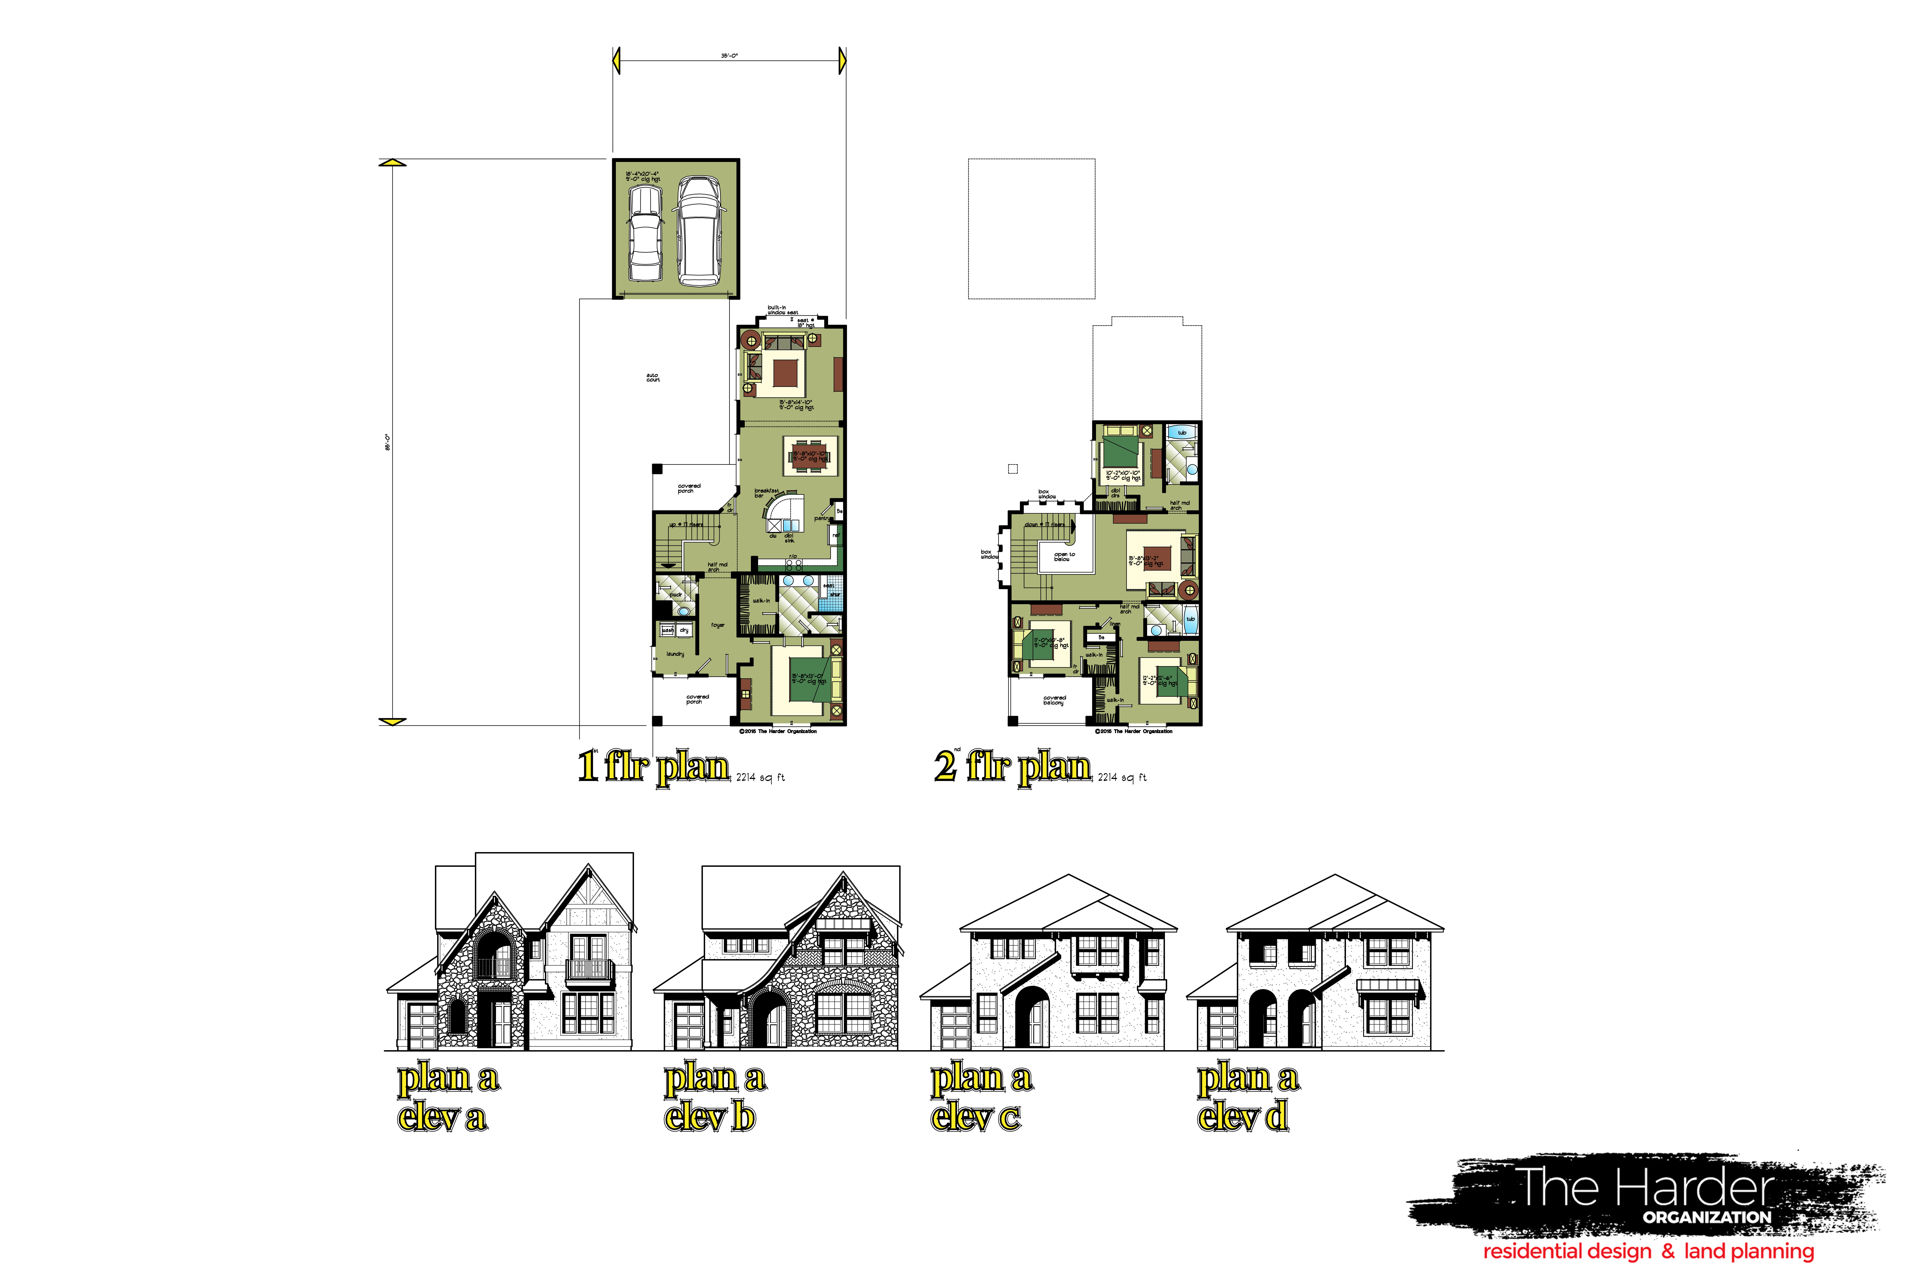 detached-site-concept2